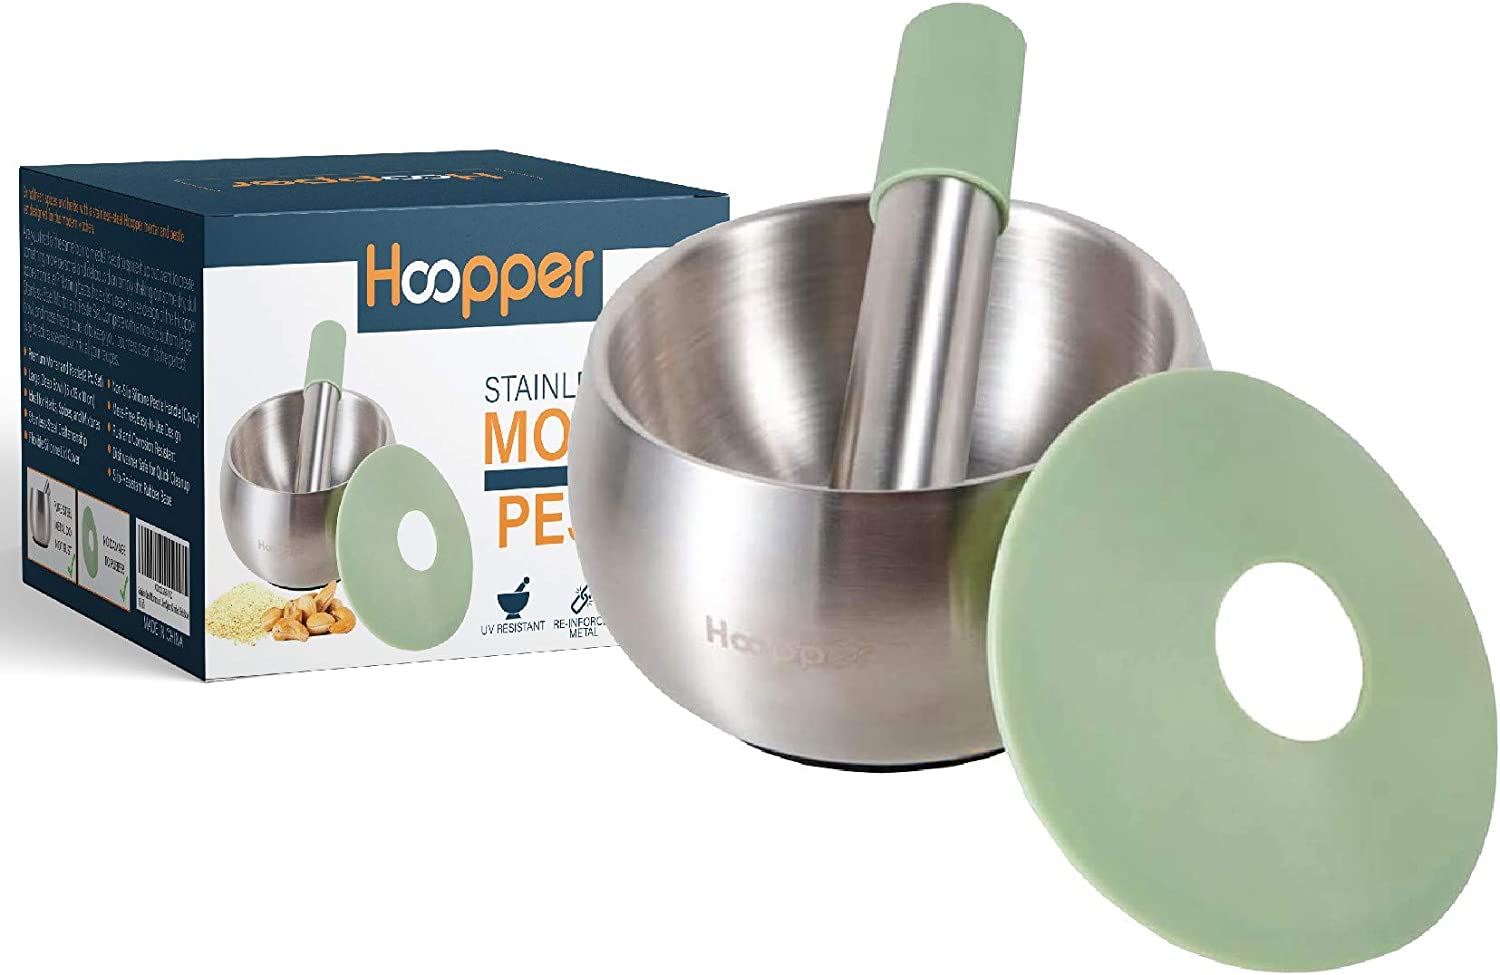 Hoopper Stainless Steel Mortar and Spice Pestle Pill Gri latest Crusher Boston Mall